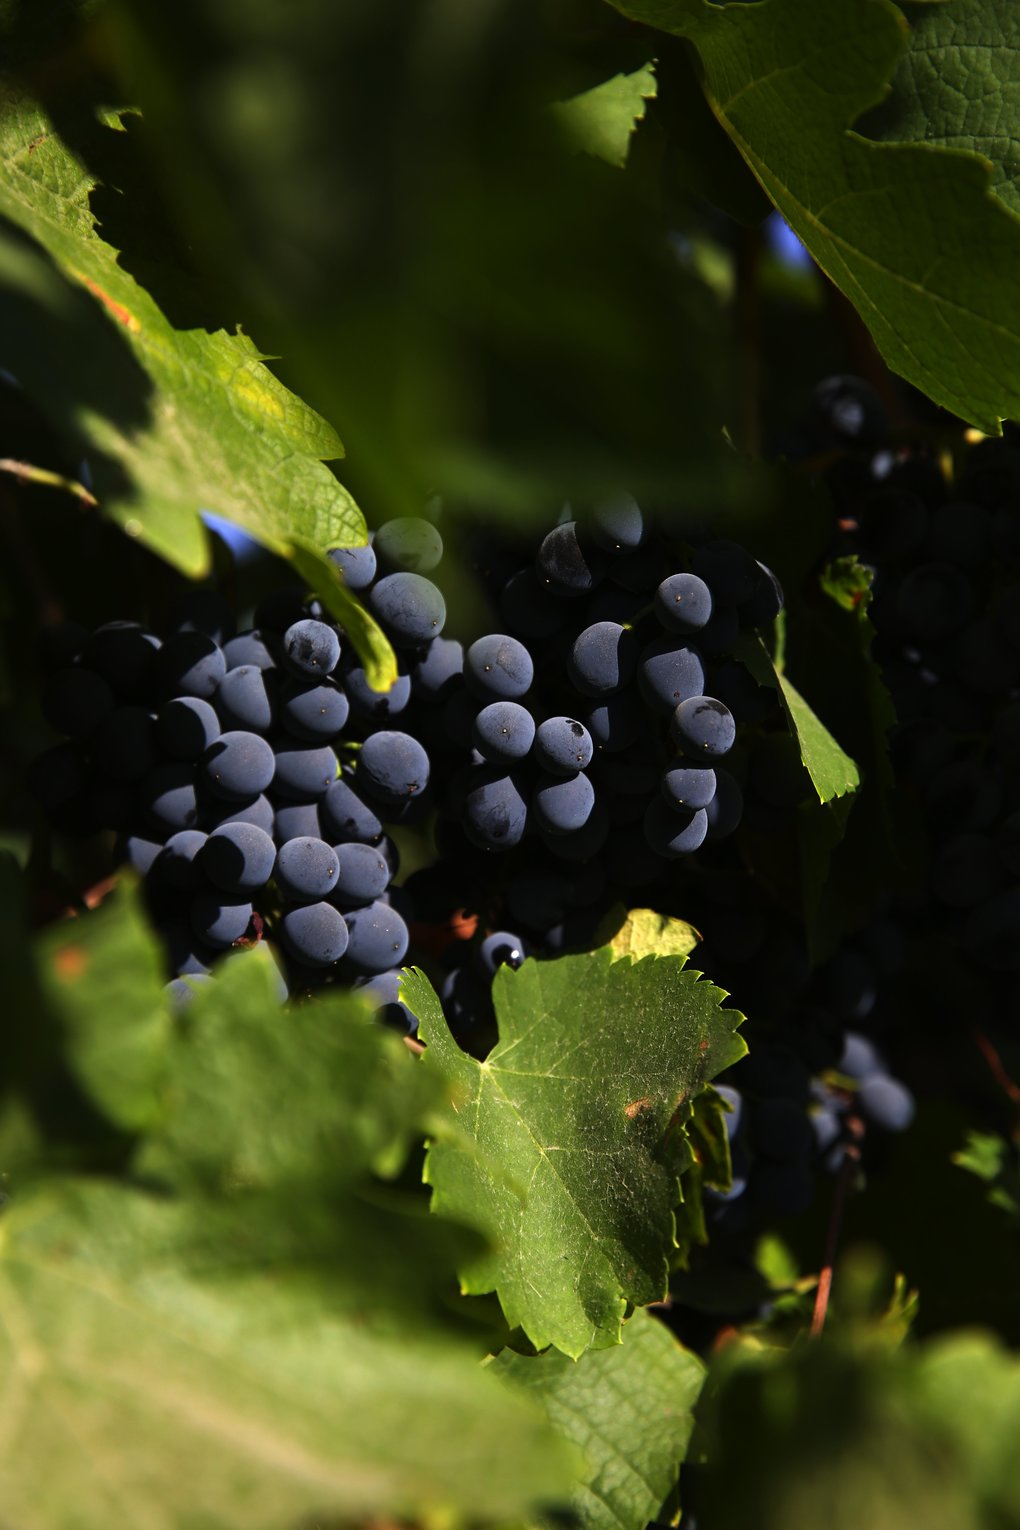 Ready to be picked, syrah grapes show off a deep blue at Chateau Ste. Michelle's Cold Creek Vineyard outside Sunnyside. (Ken Lambert/The Seattle Times)